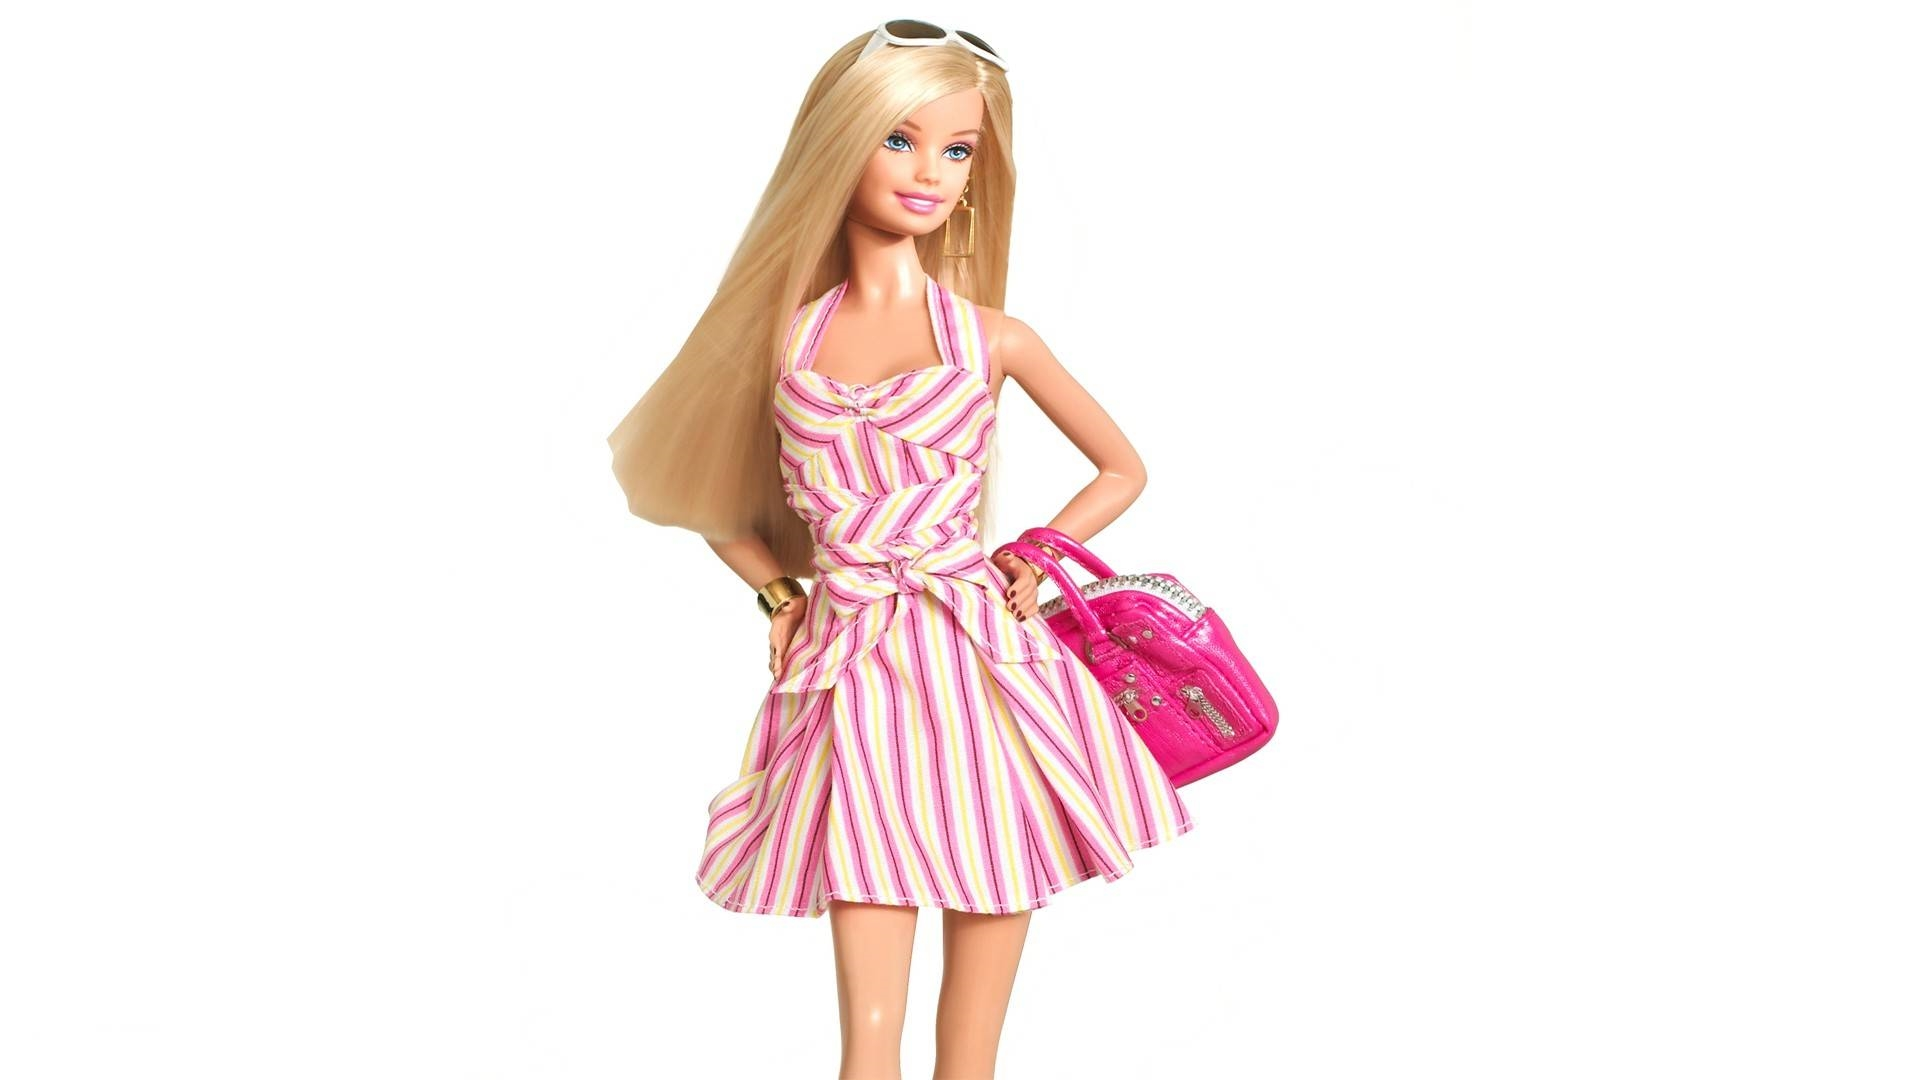 Wallpaper clipart barbie Mickey Mouse barbie Image doll